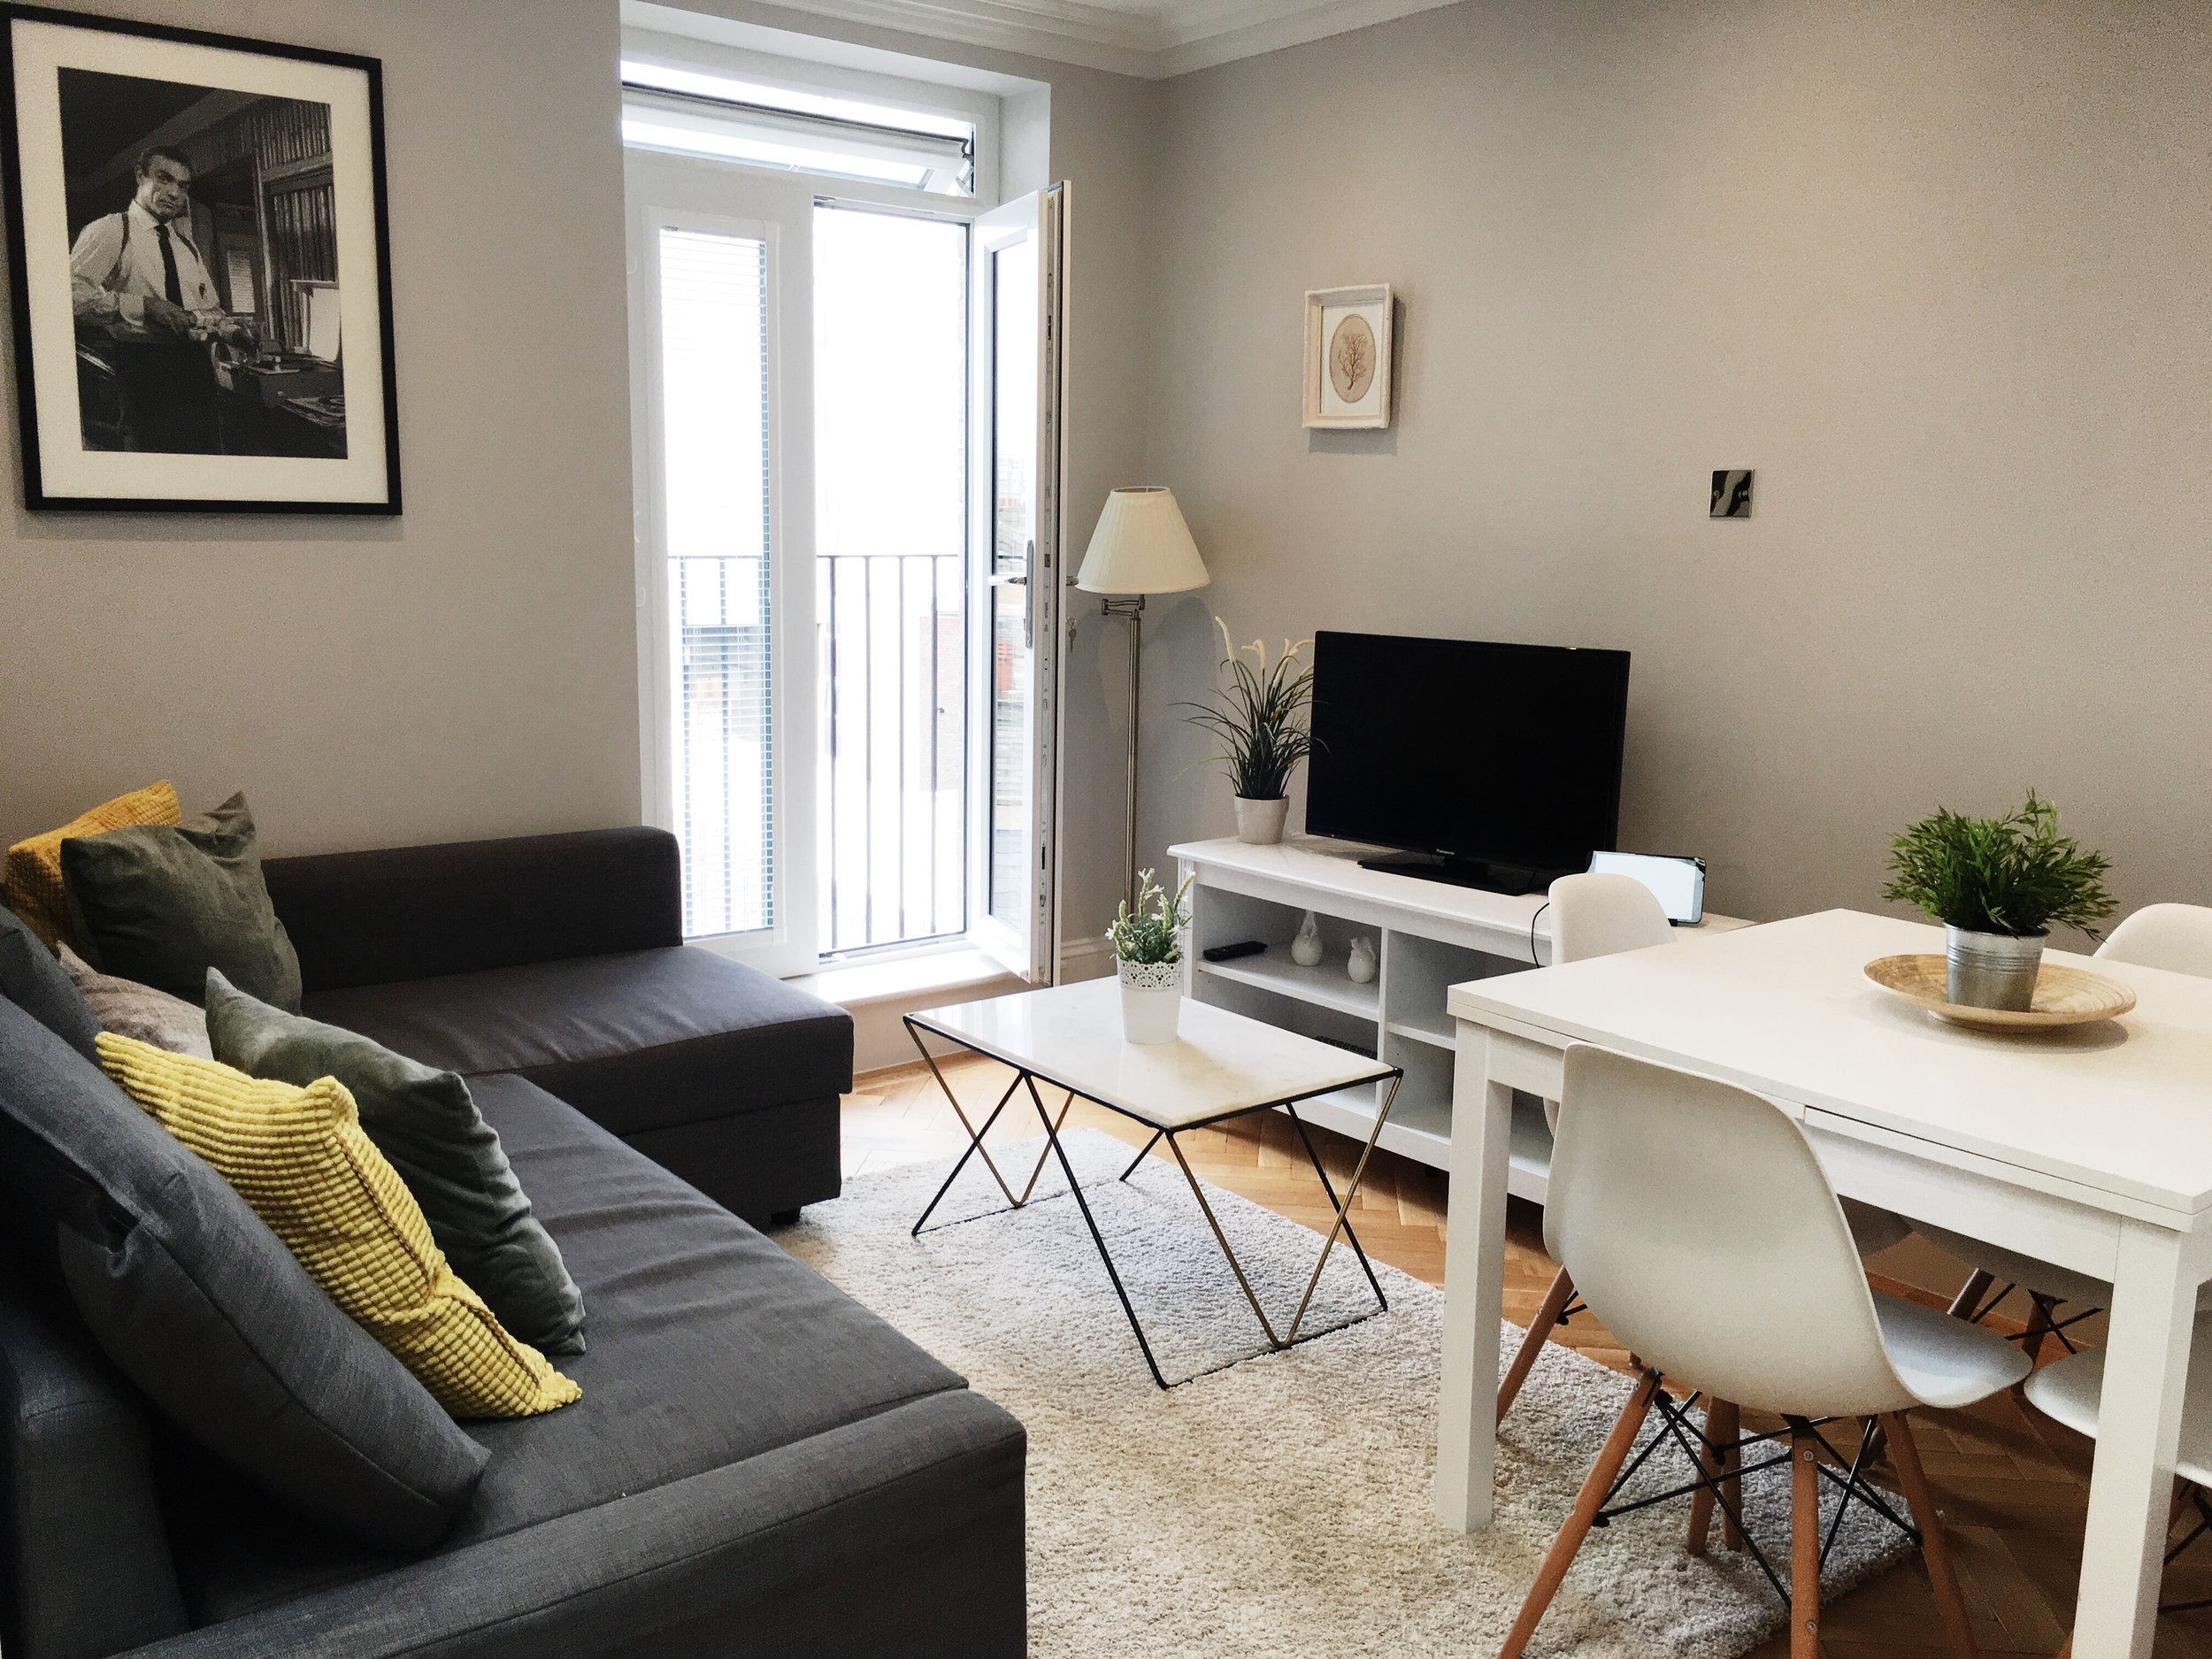 Living room of my FG Properties apartment rental in London